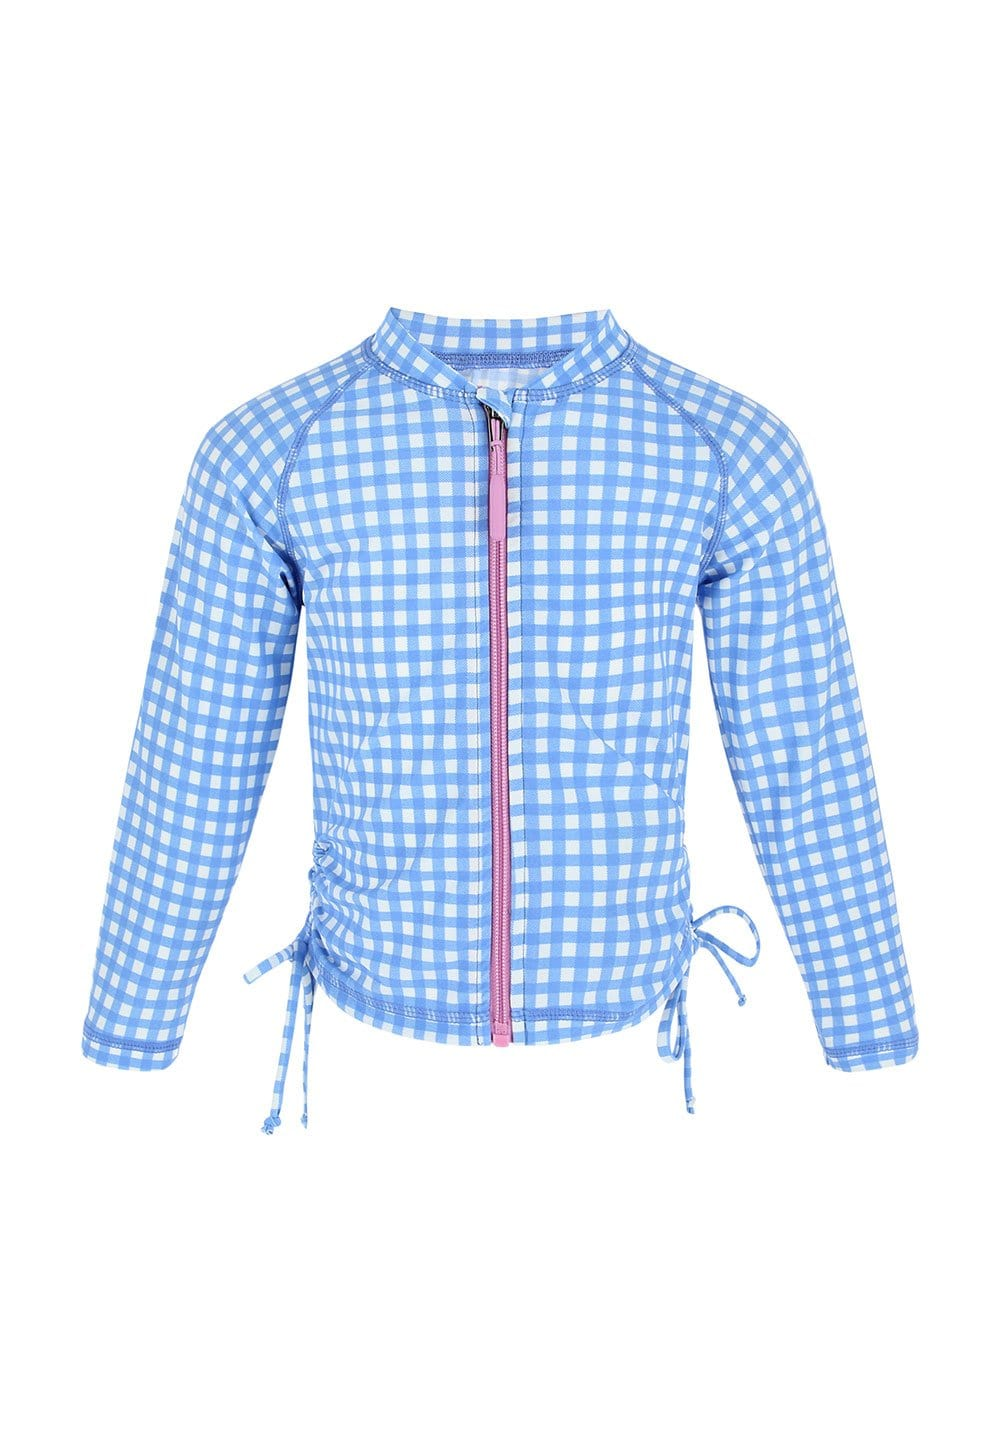 UPF50+ Junior Rash Top (Unisex) in Gingham Summer Print